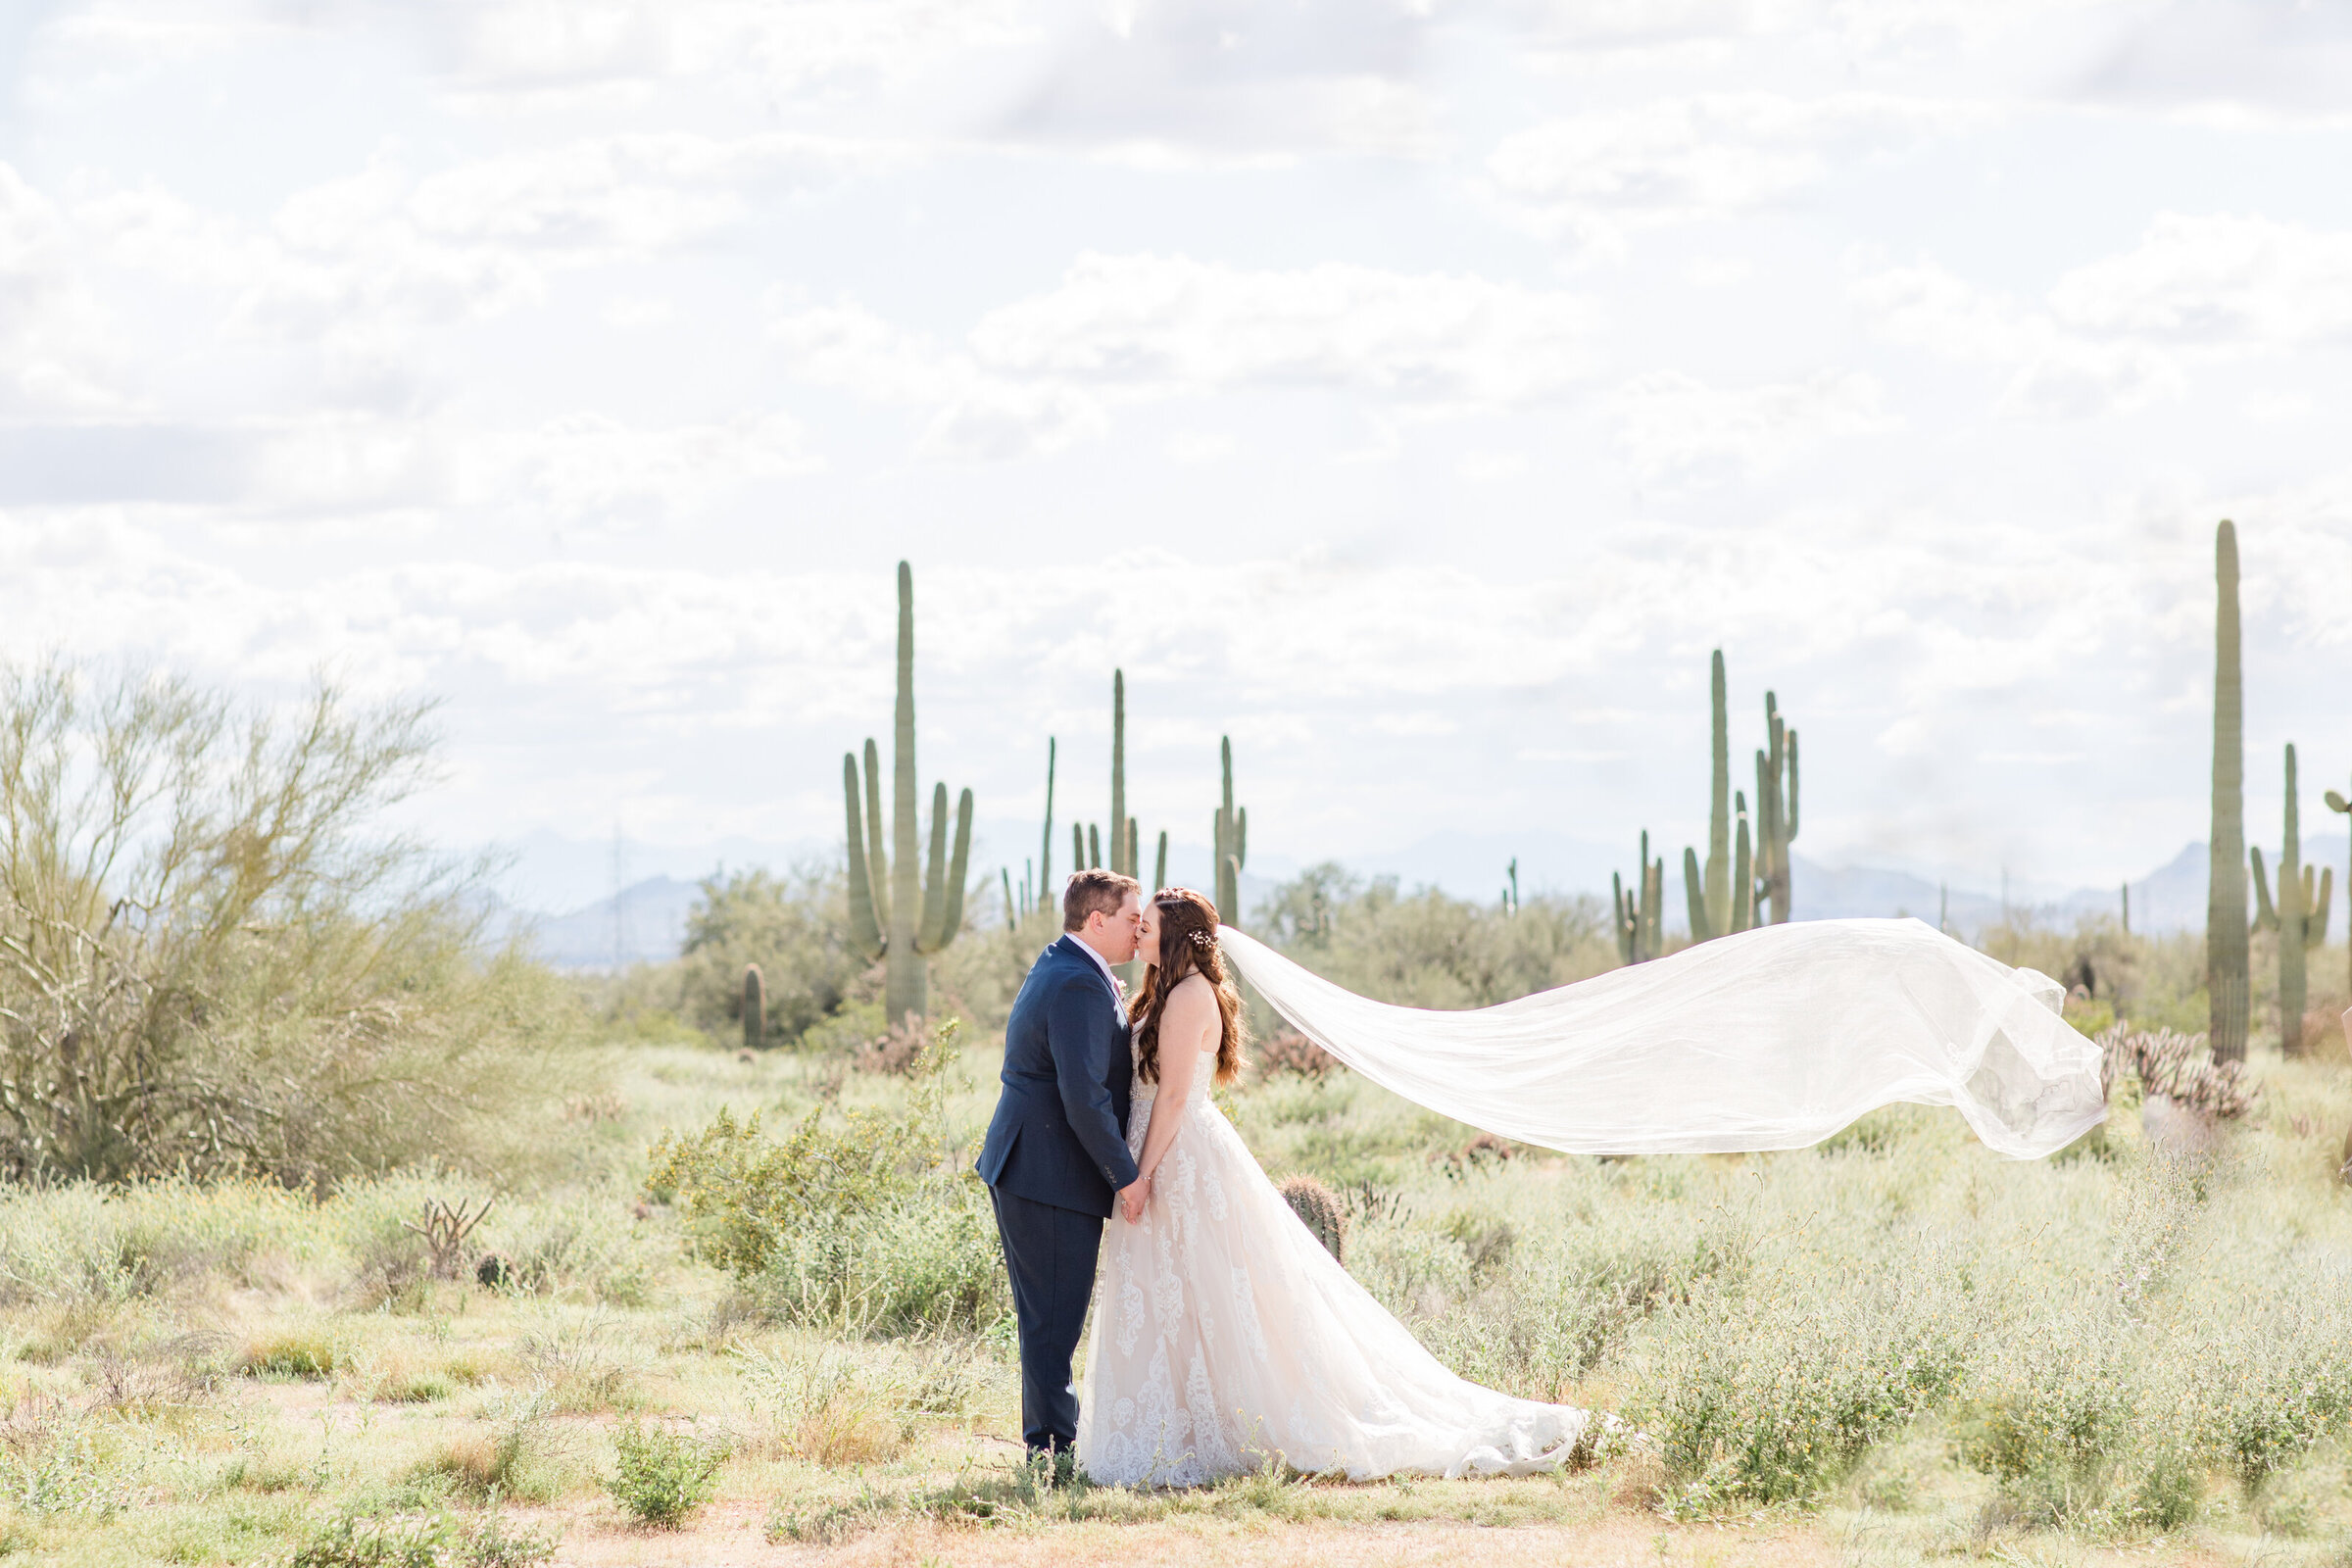 Bride and groom standing in the desert with veil flying in the wind